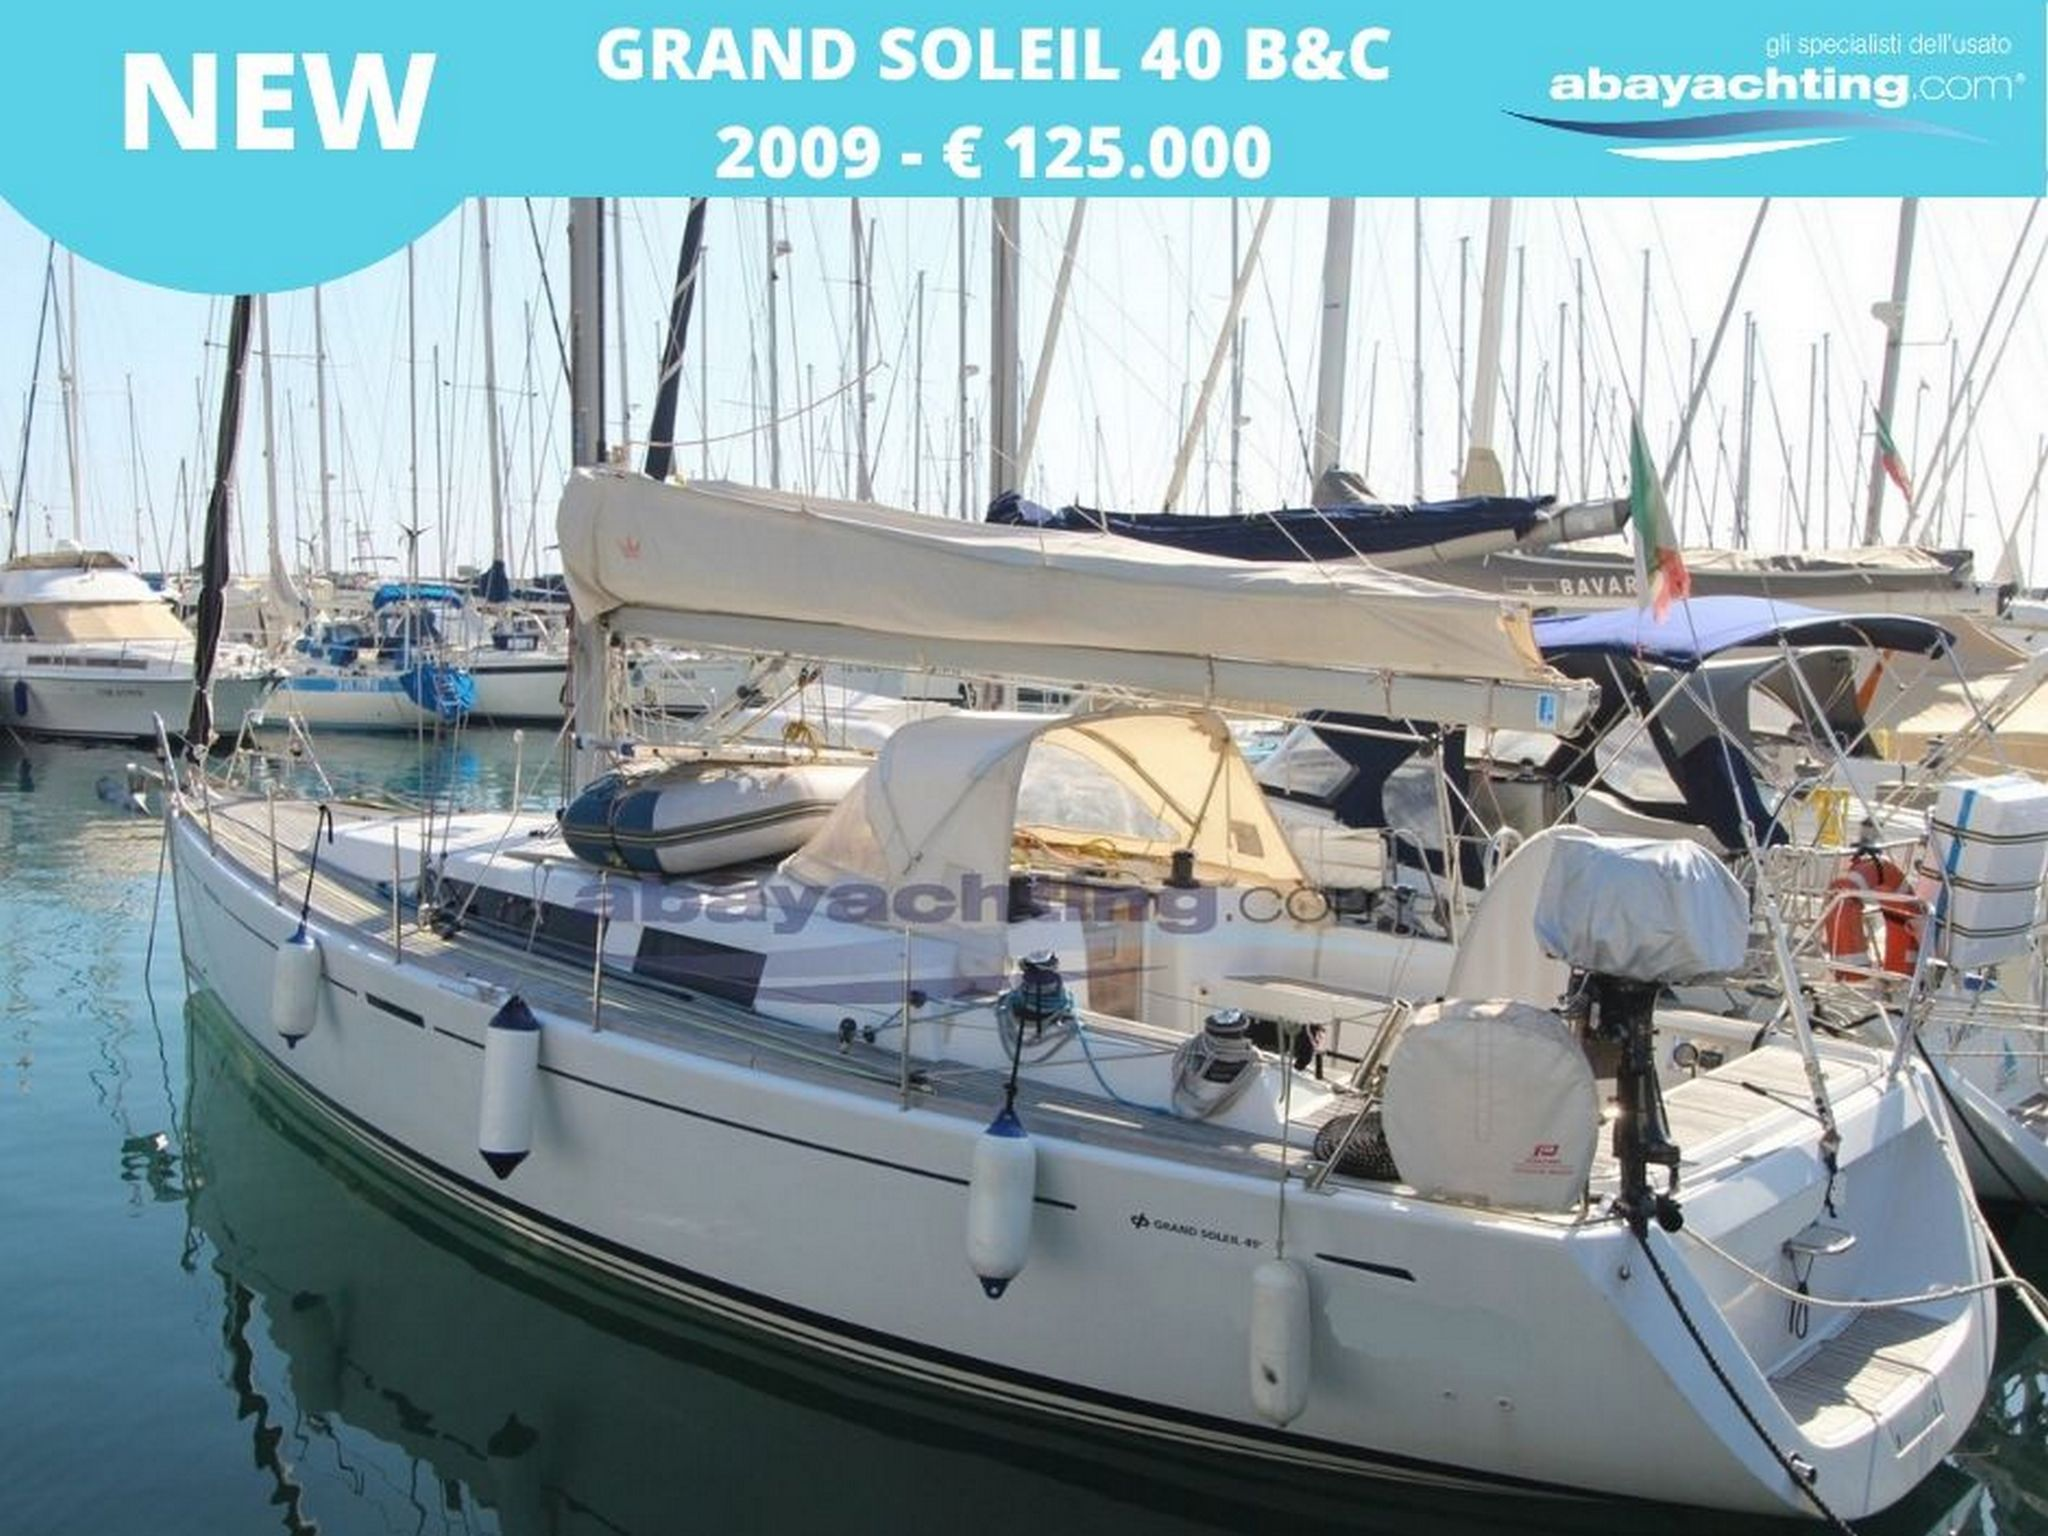 New arrival Grand Soleil 40 B&C